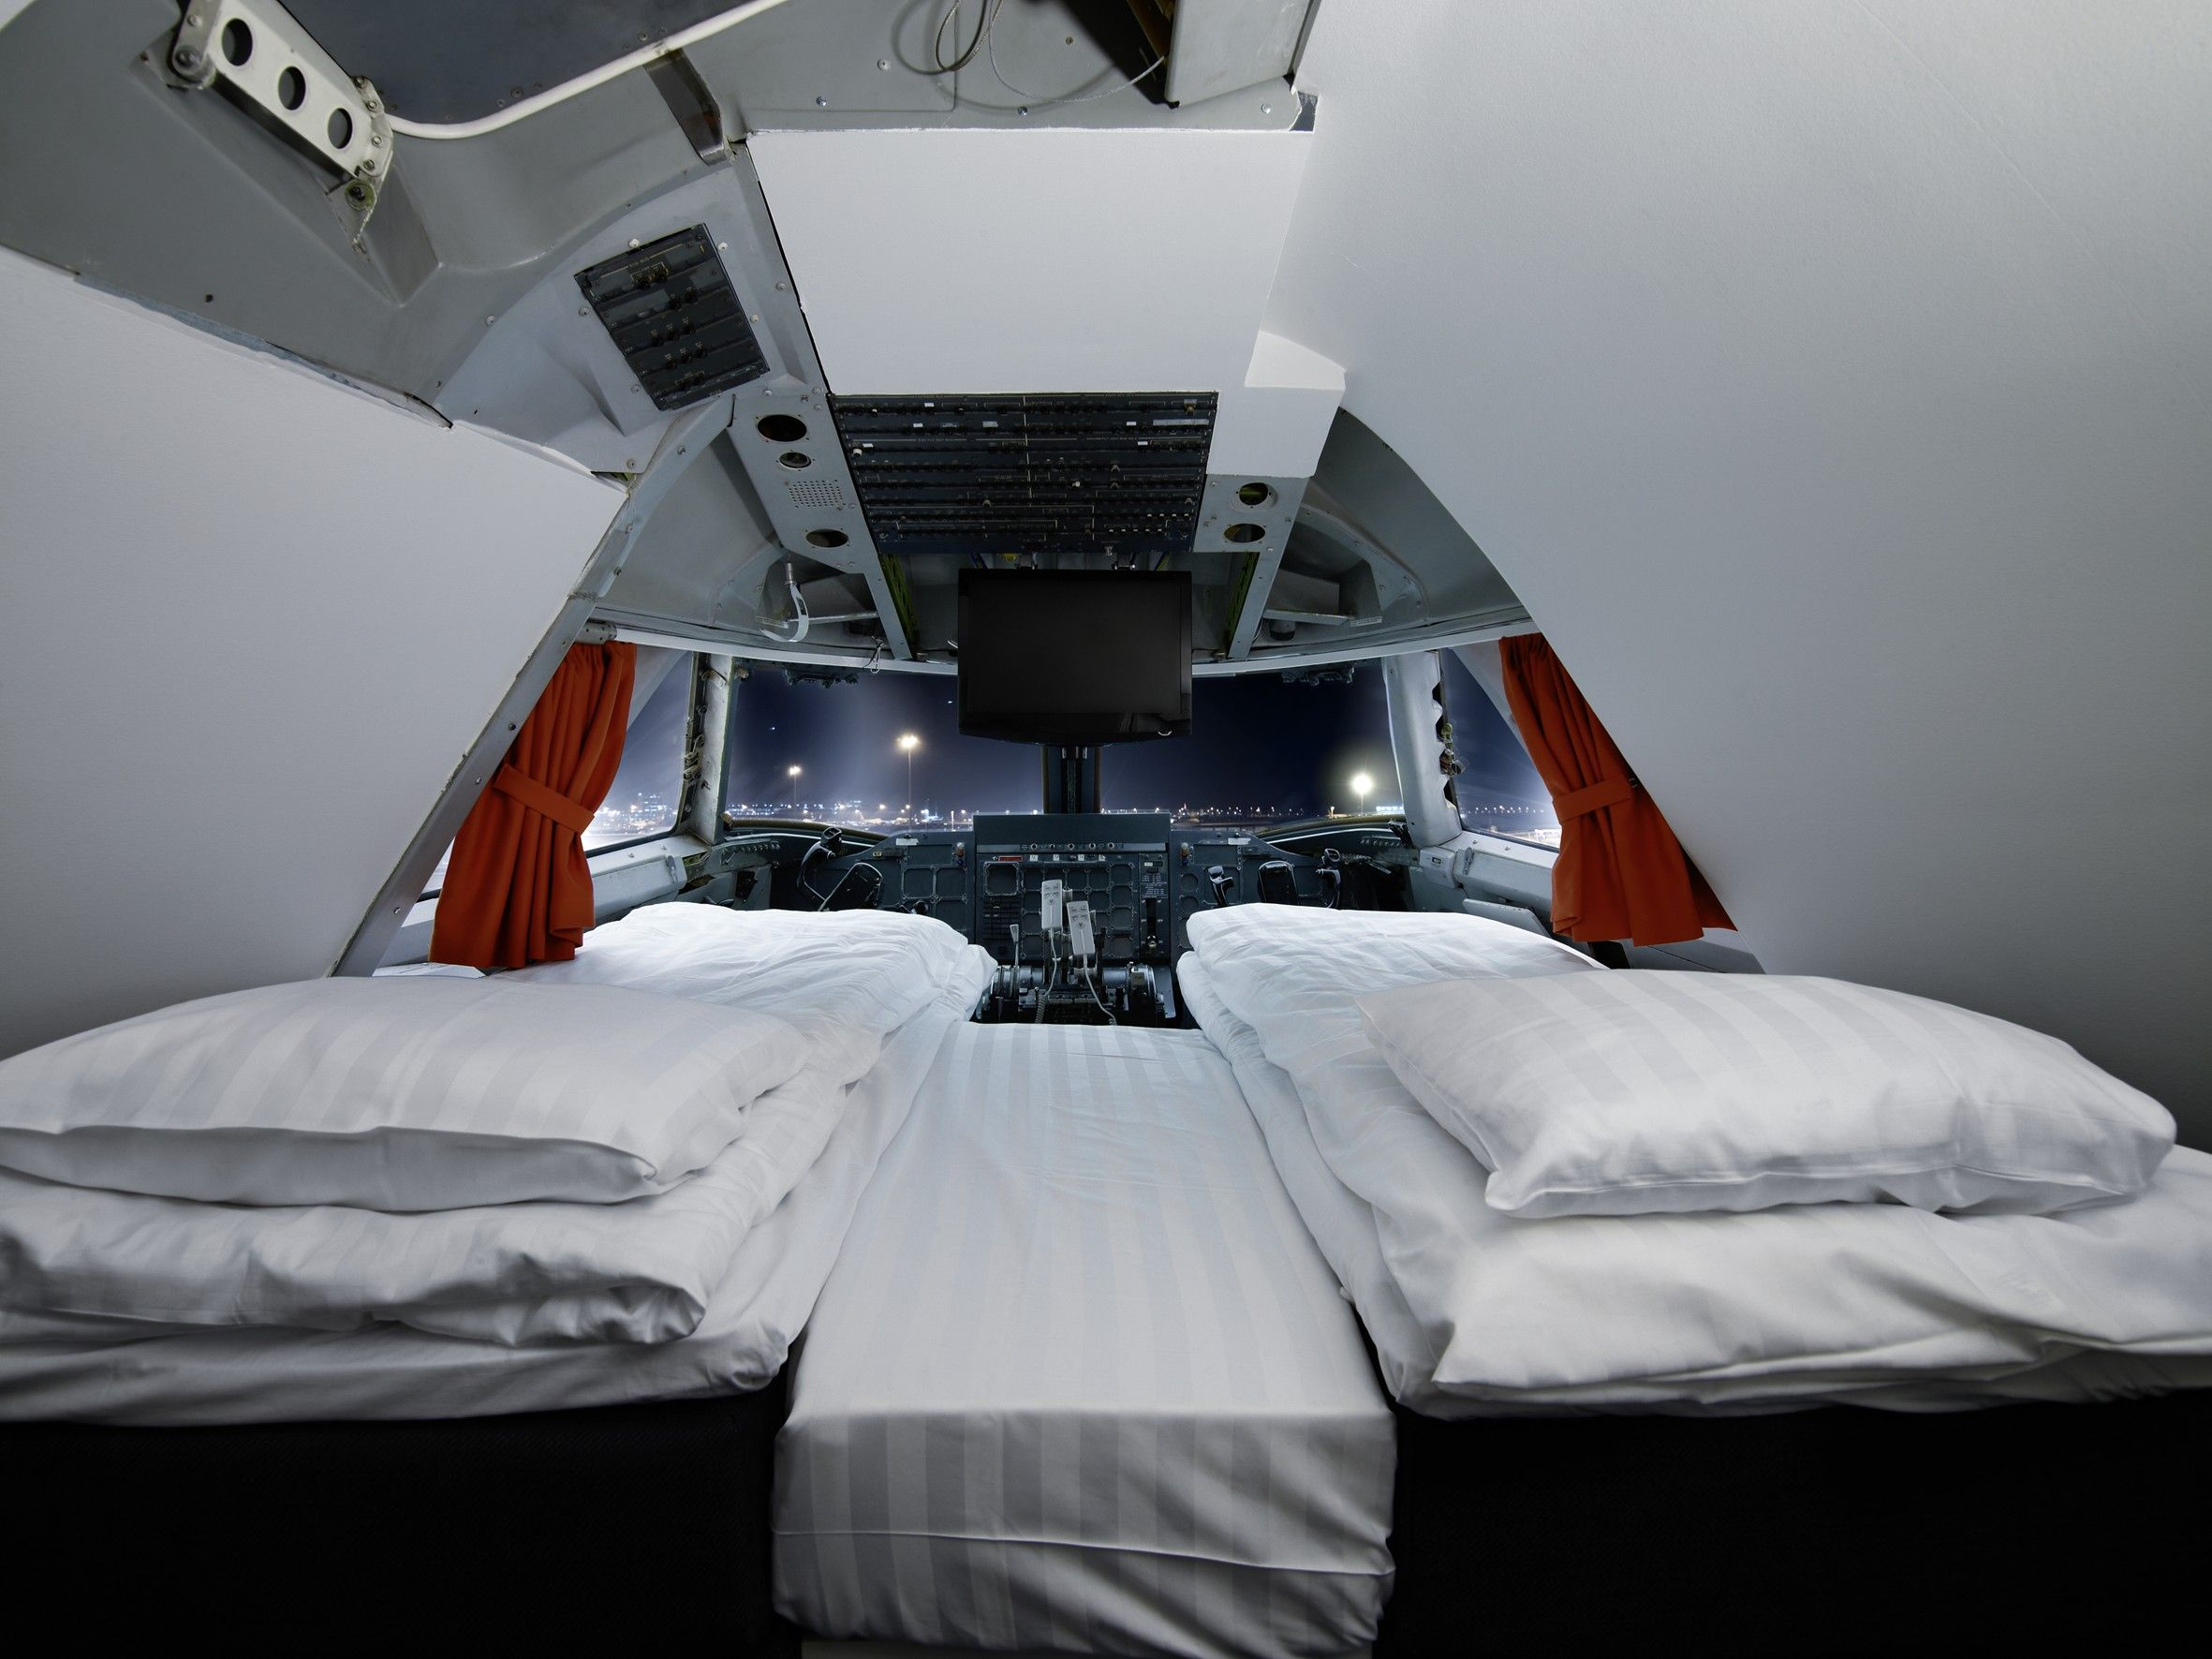 This Out-Of-Service Boeing 747 Jet Was Turned Into a Chic Hostel and The Rooms Are Pretty Fly